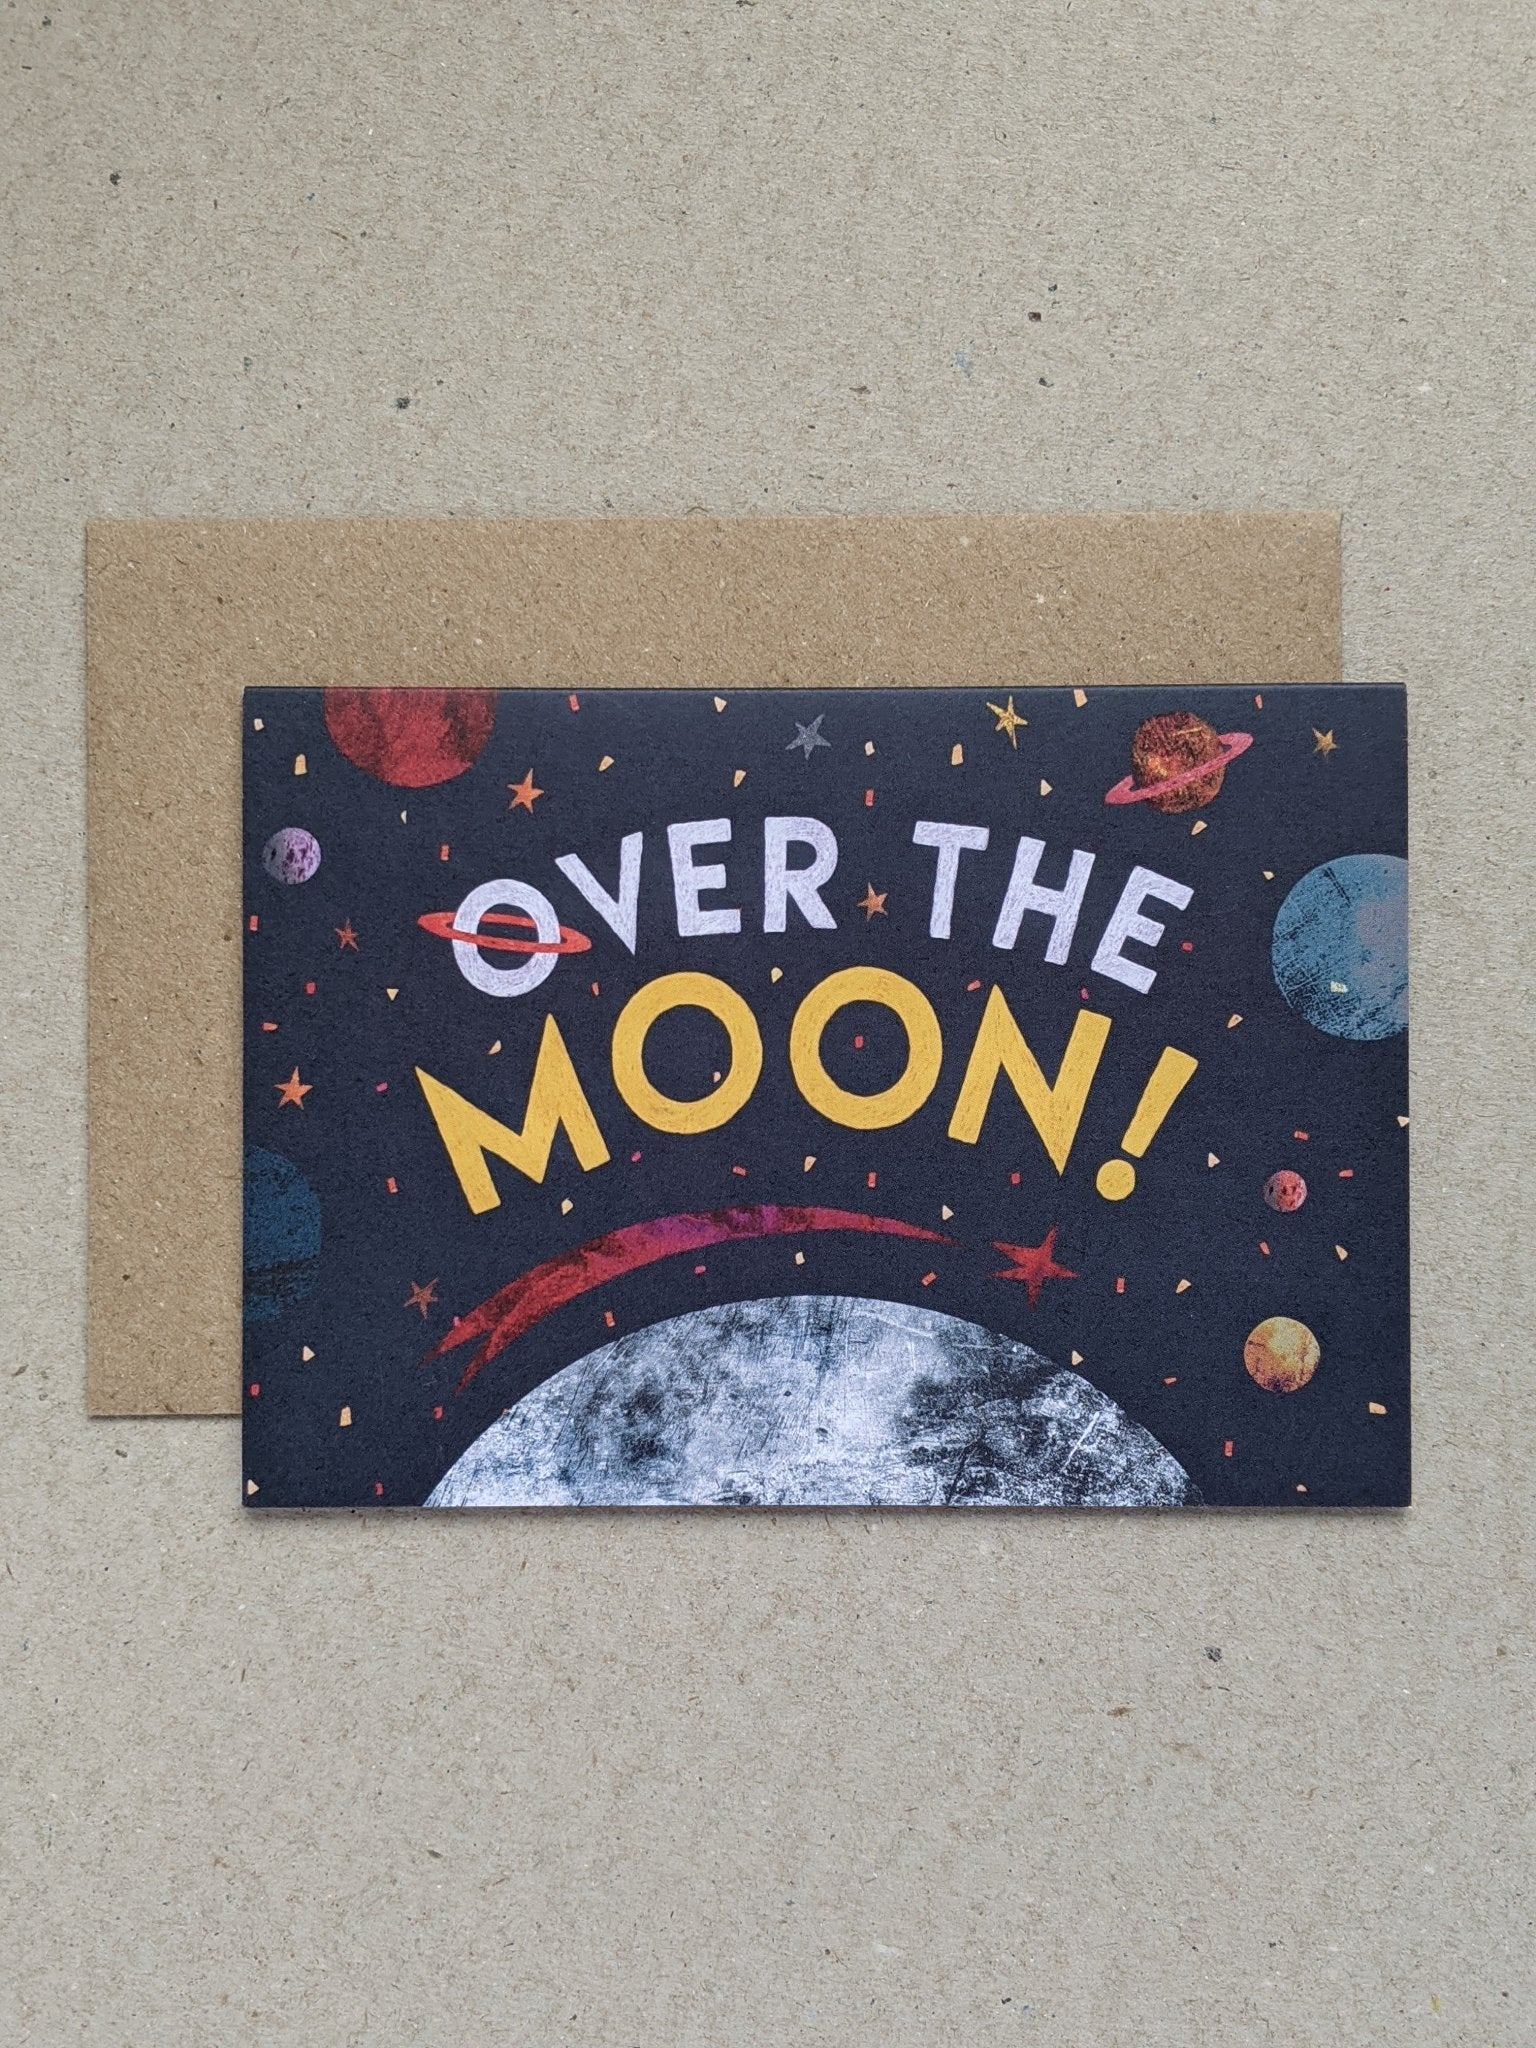 Over The Moon celebration greetings card - The Stationery Cupboard